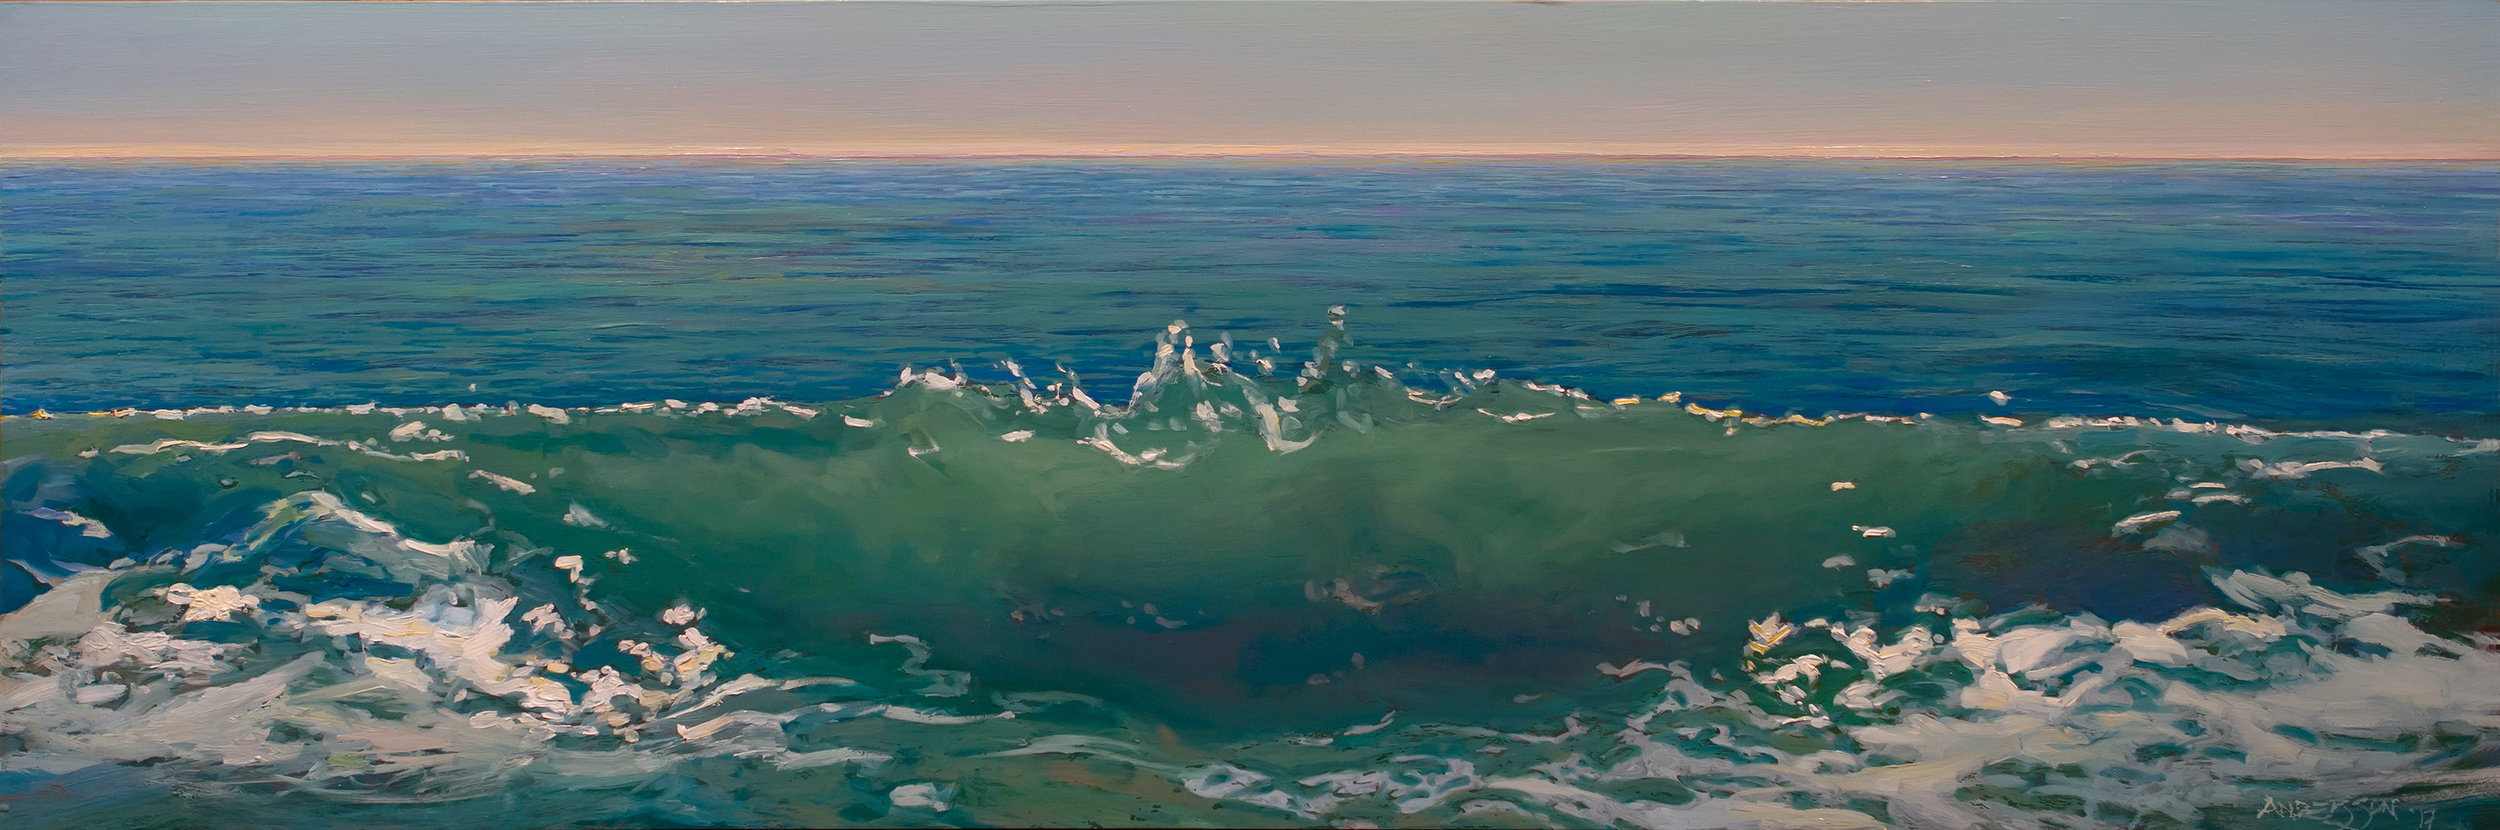 "OCEANUS, NO. 4   12"" x 24"" oil on panel"